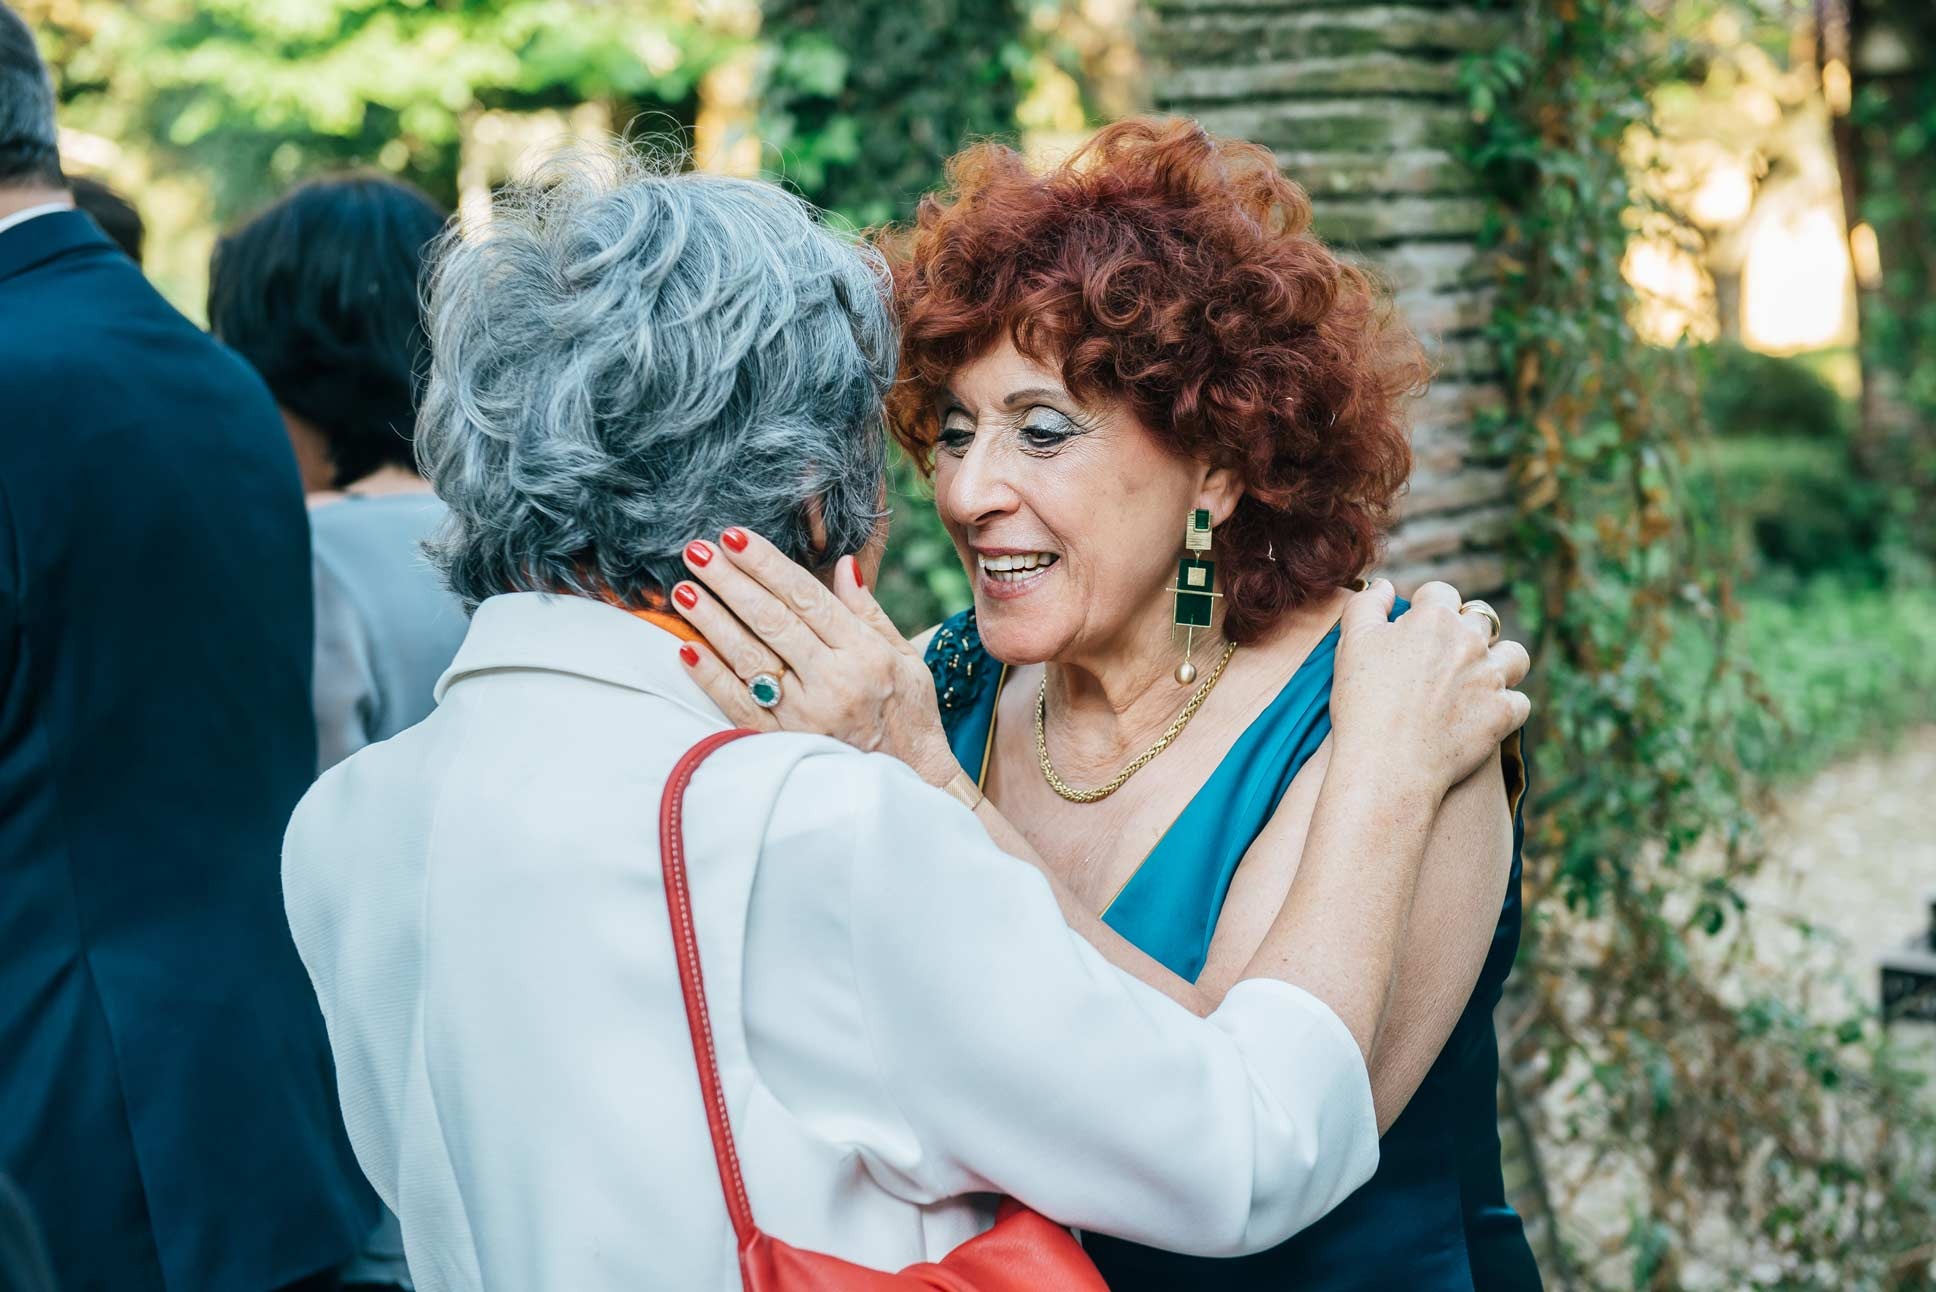 Wedding-Photographer-in-Italy-Natural-Wedding-Photography-Reception